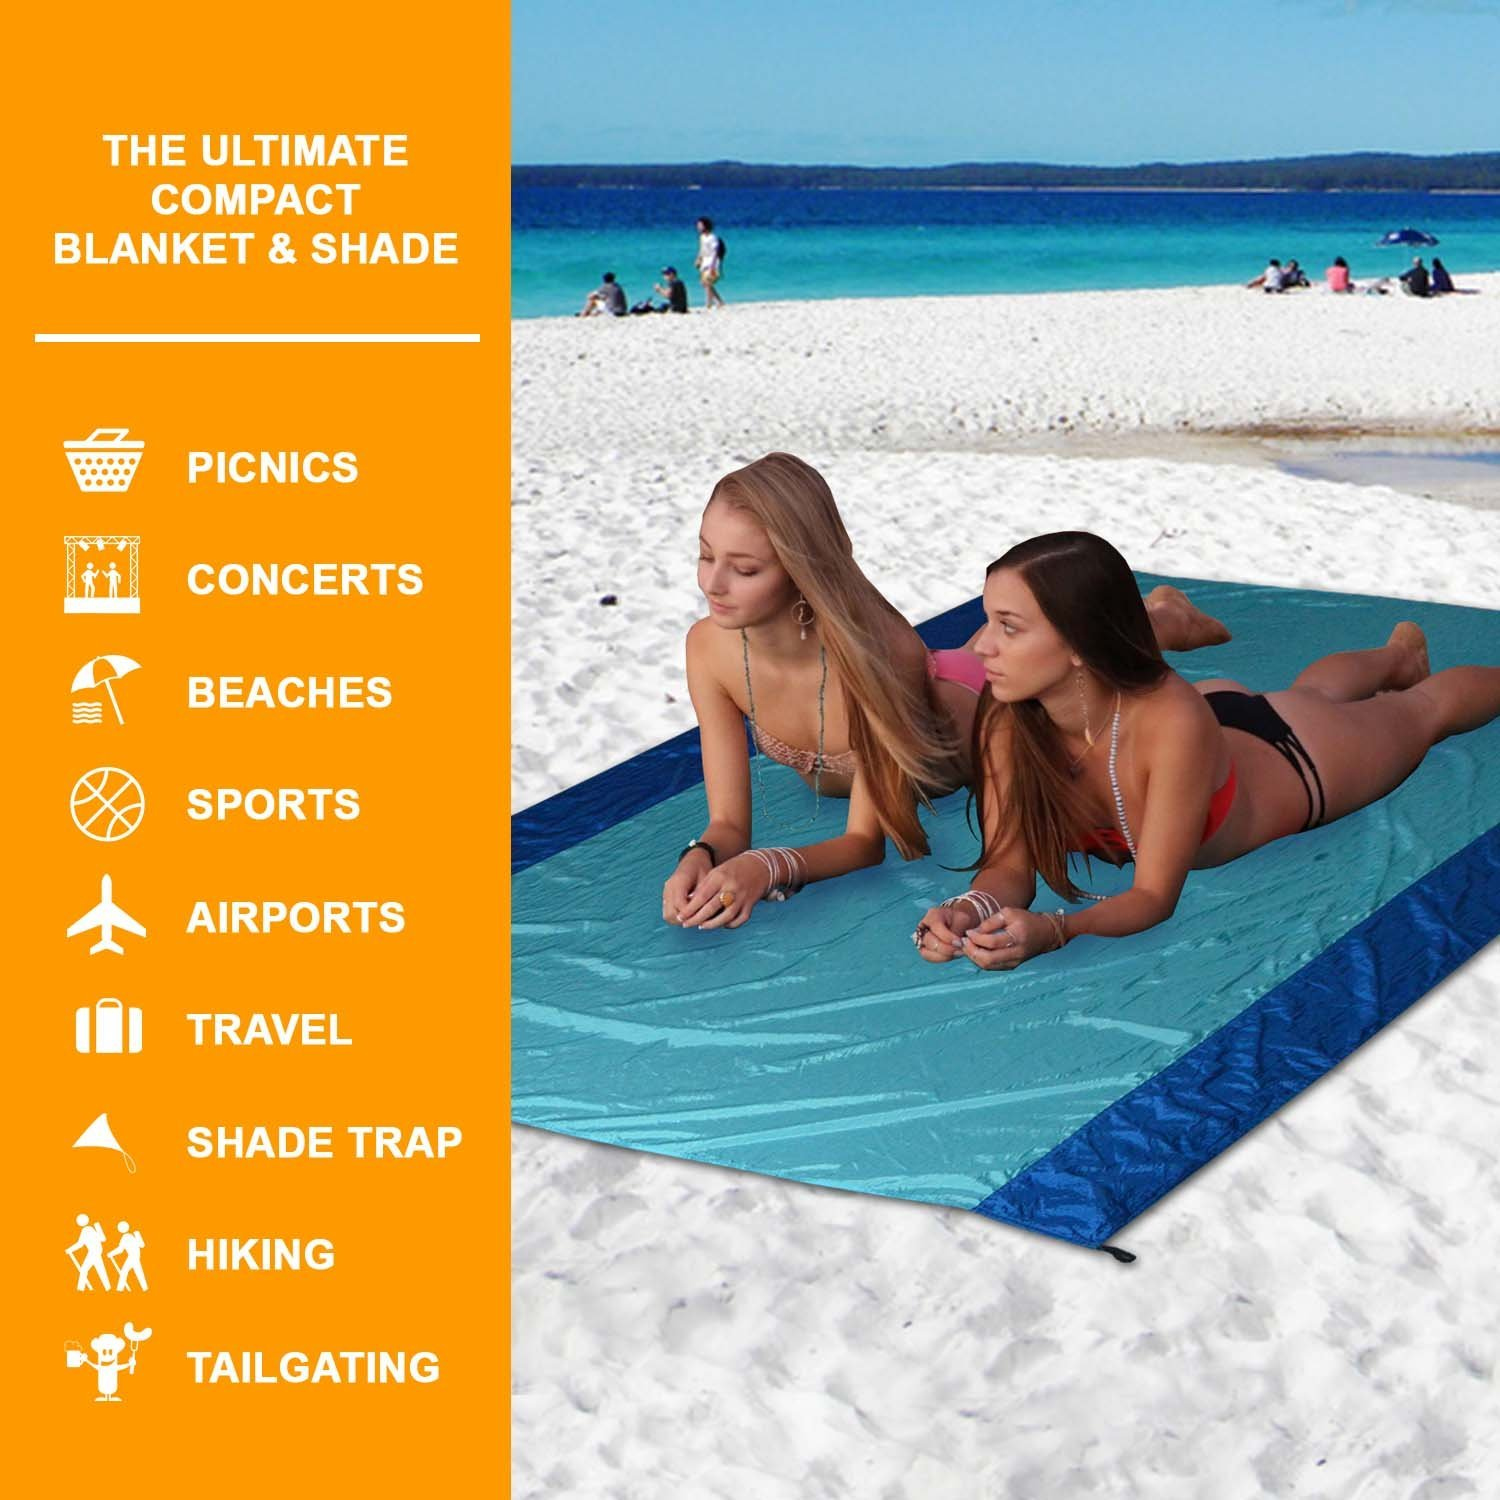 [Pack of 5] Sand Proof Beach Picnic Blanket of Parachute Nylon, works as Shade Tarp Sheet for your Sandless travel escape perfect for drying towel not a black microfiber waterproof or resistant mat by Spencer&Webb (Image #2)